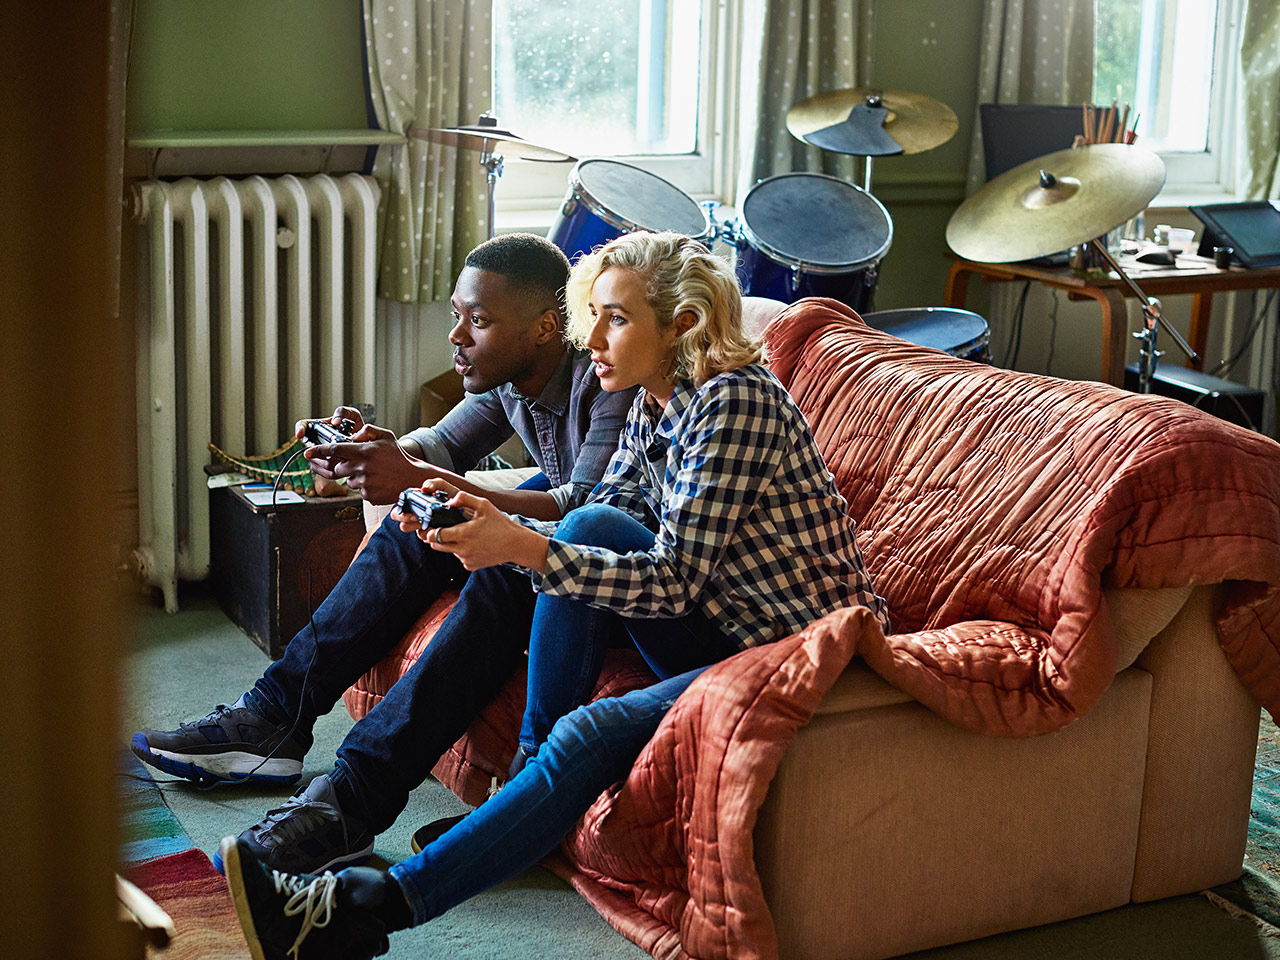 Fun Video Games To Play With Your Significant Other